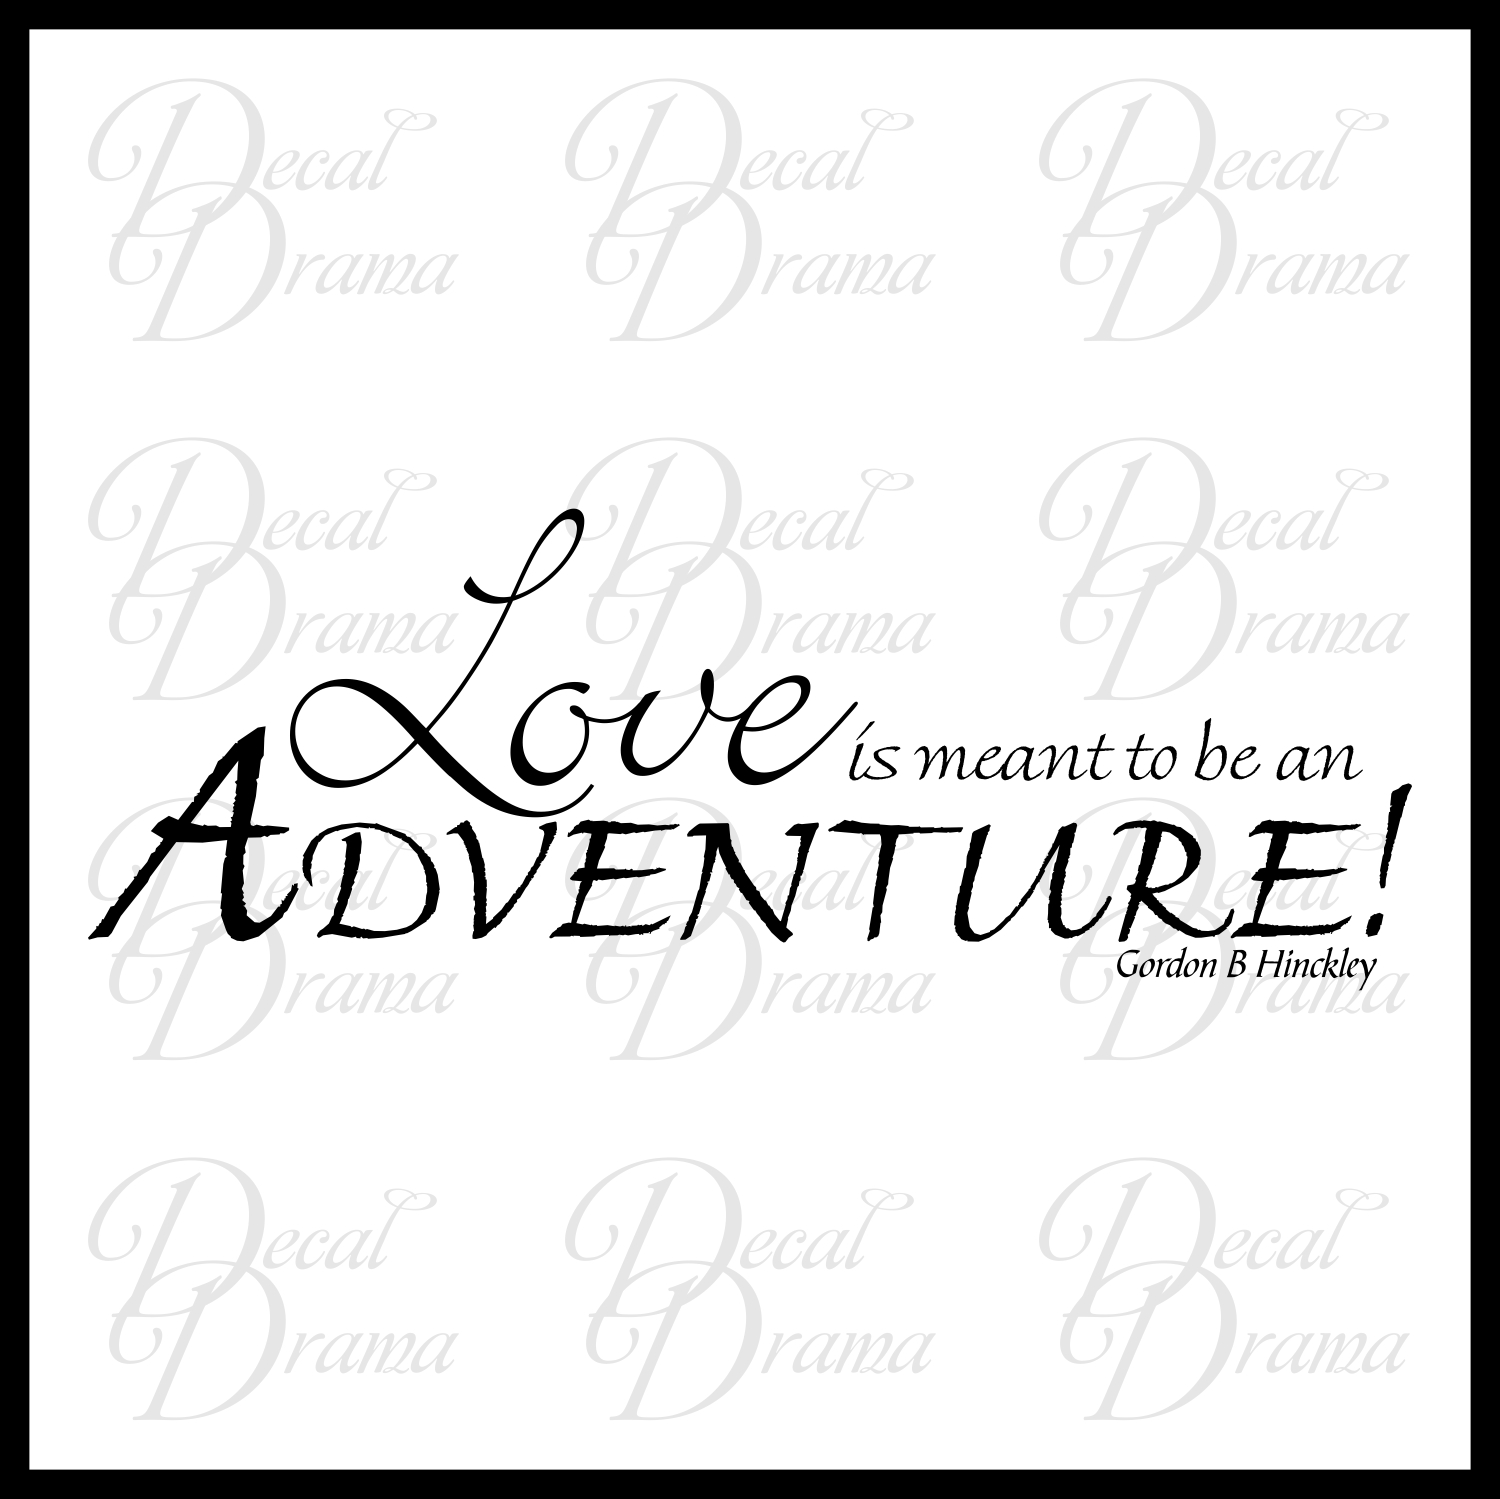 Love is Meant to be an ADVENTURE, Gordon B. Hinckley quote, Vinyl Wall  Decal from Decal Drama